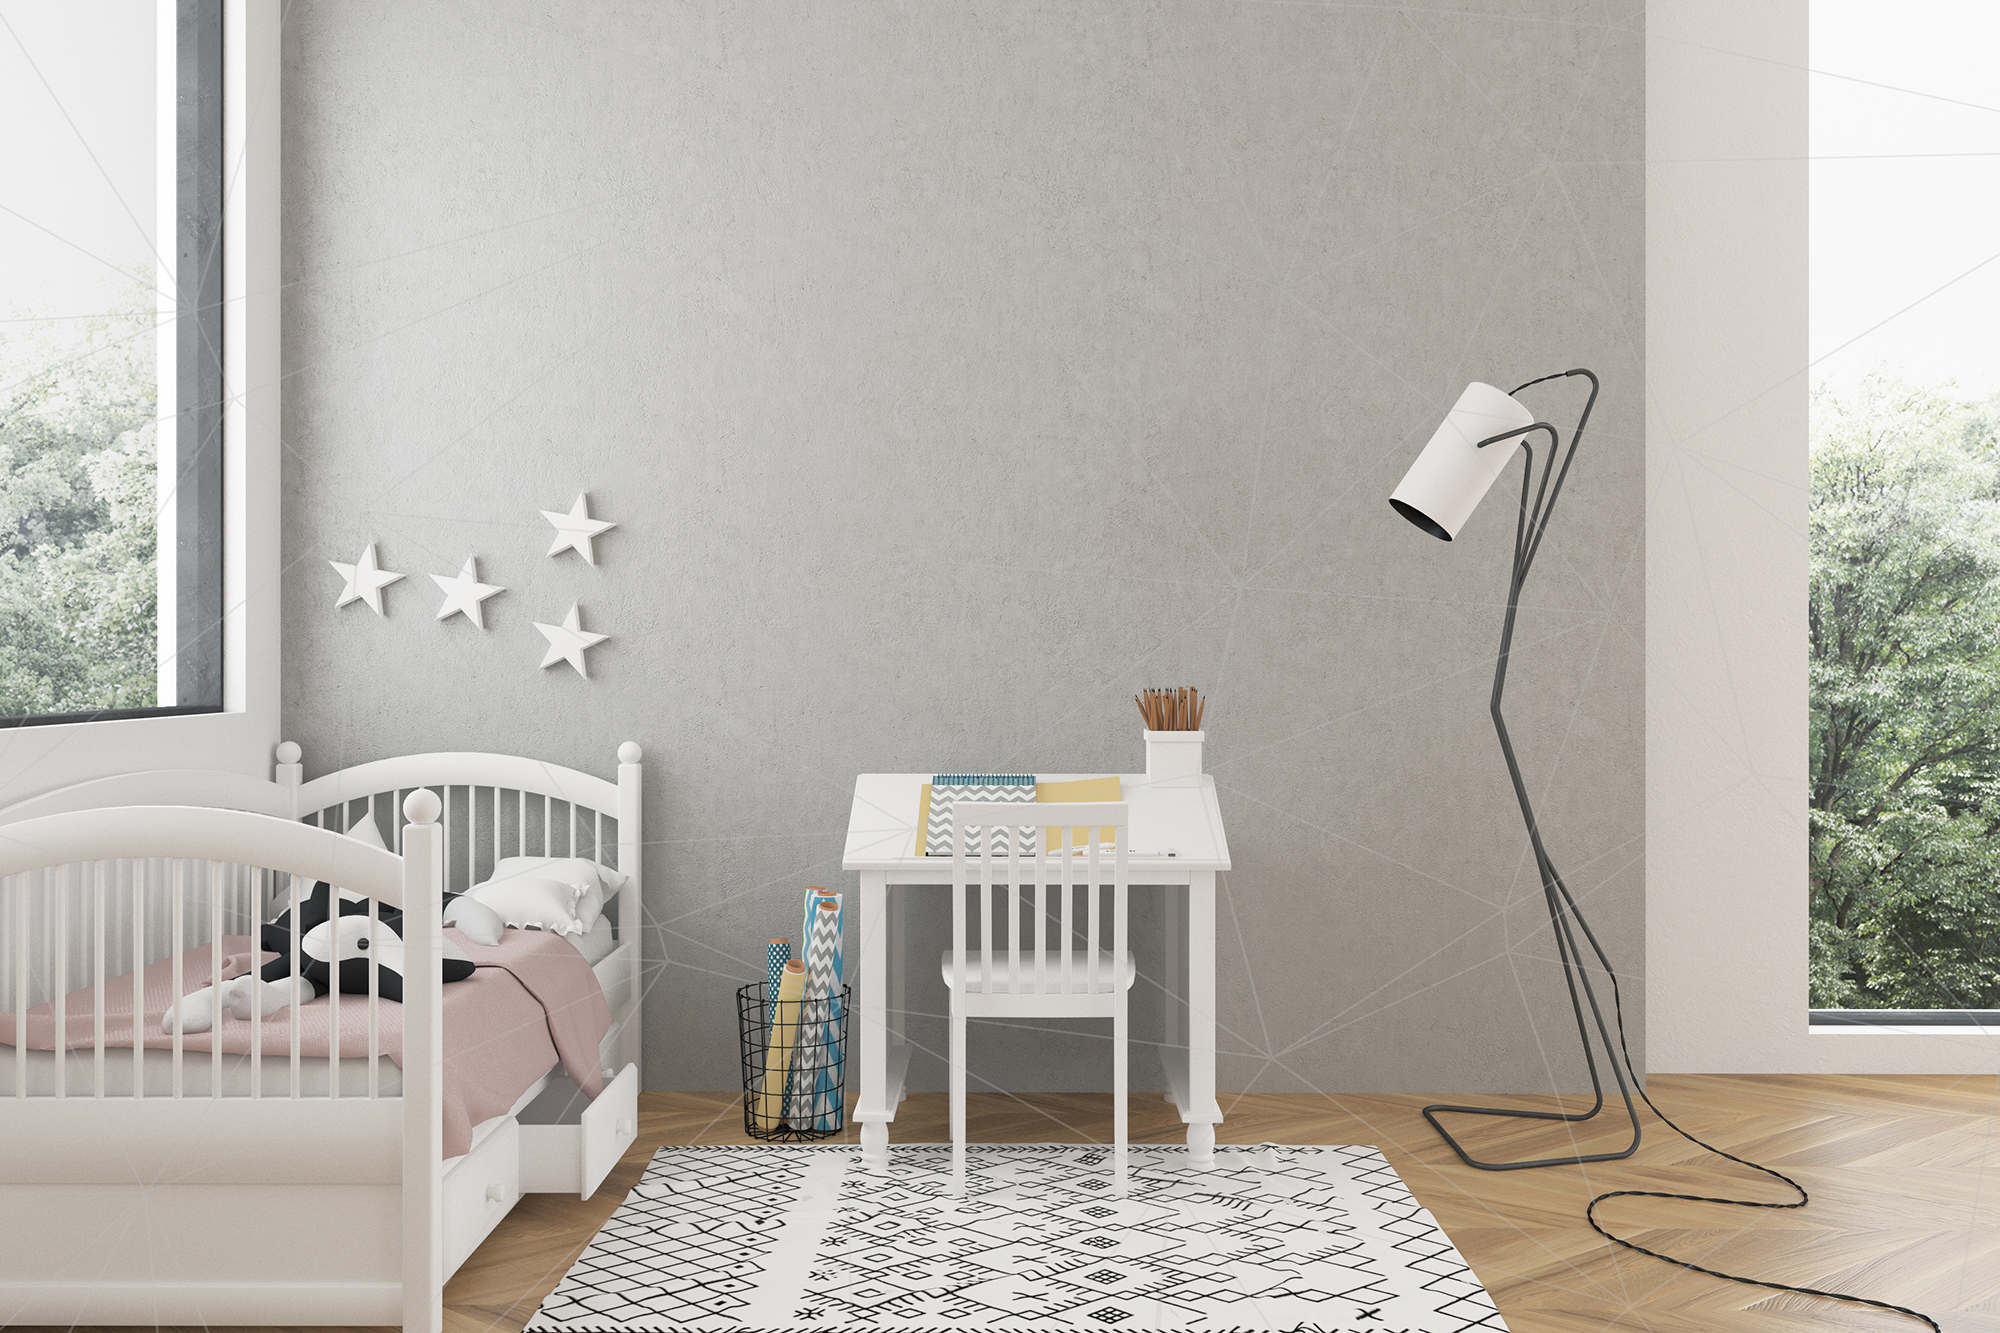 Nursery interior bundle - 10 images 60 off example image 7